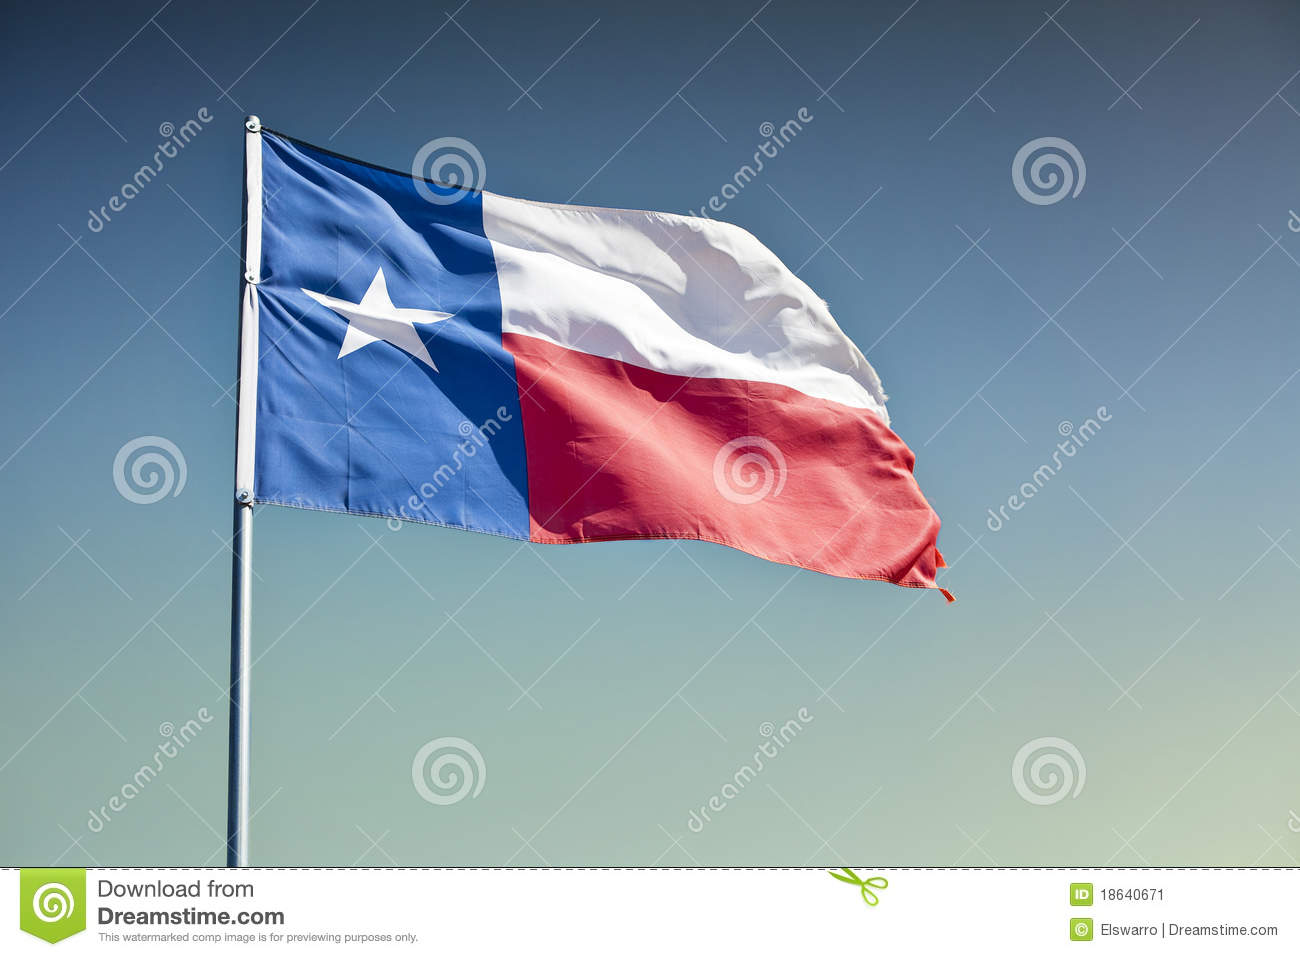 Bandeira do estado de Texas